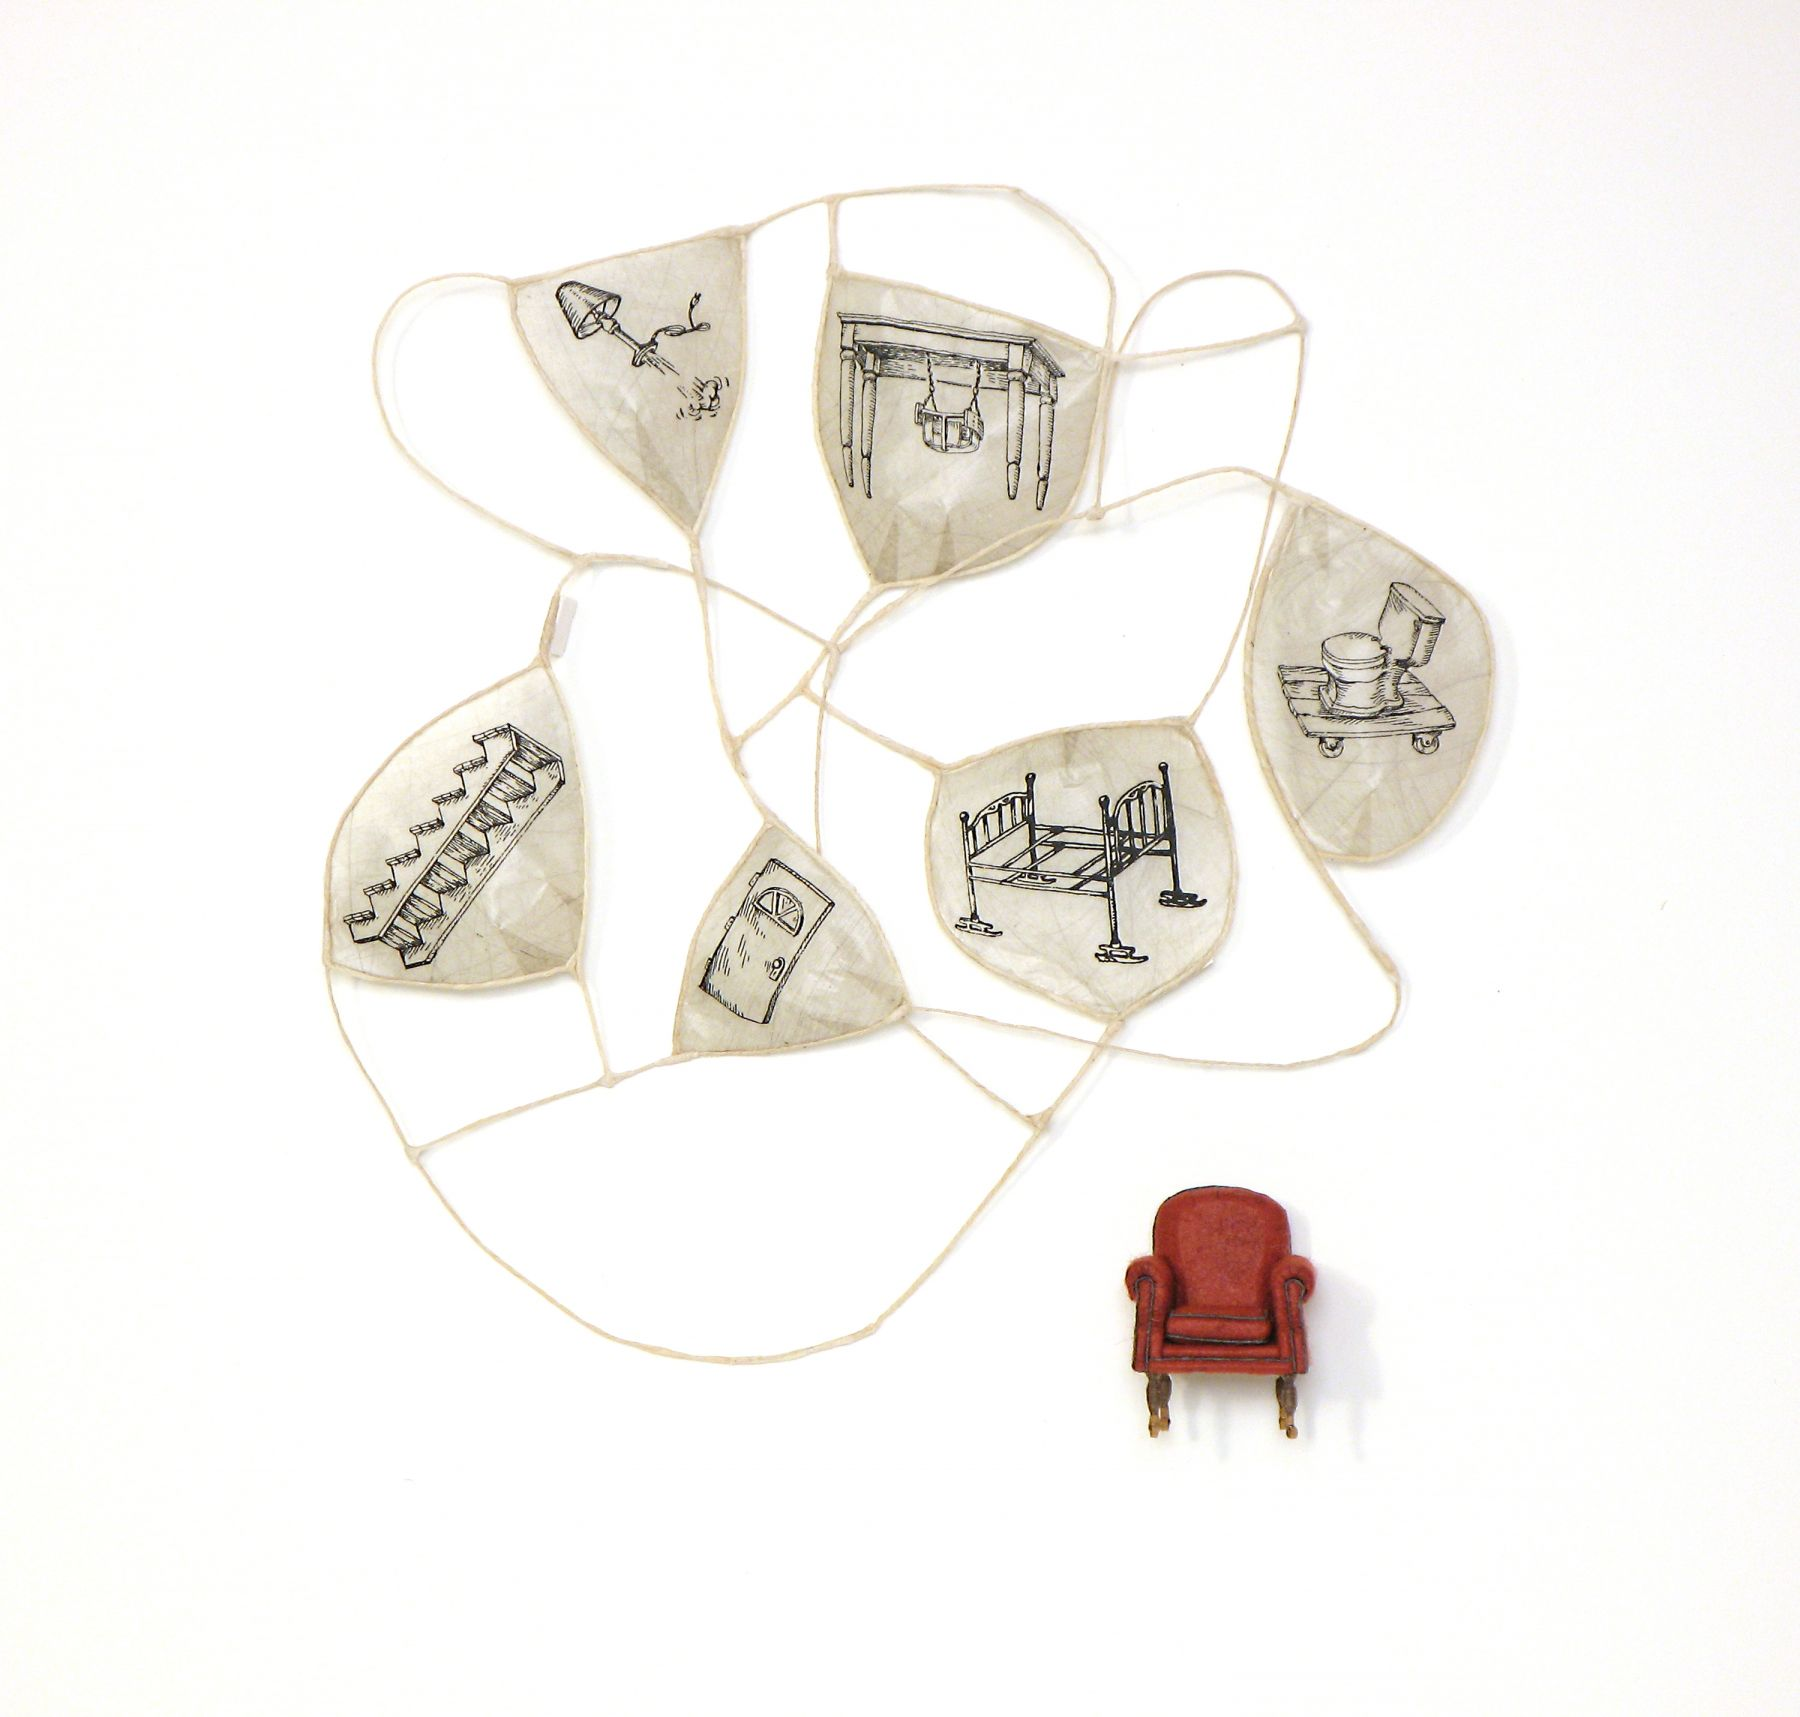 Cybèle Young, Add it to My List (SOLD), 2008, Japanese paper construction with copperplate etching, 17 x 16 1/4 x 2 1/4 inches